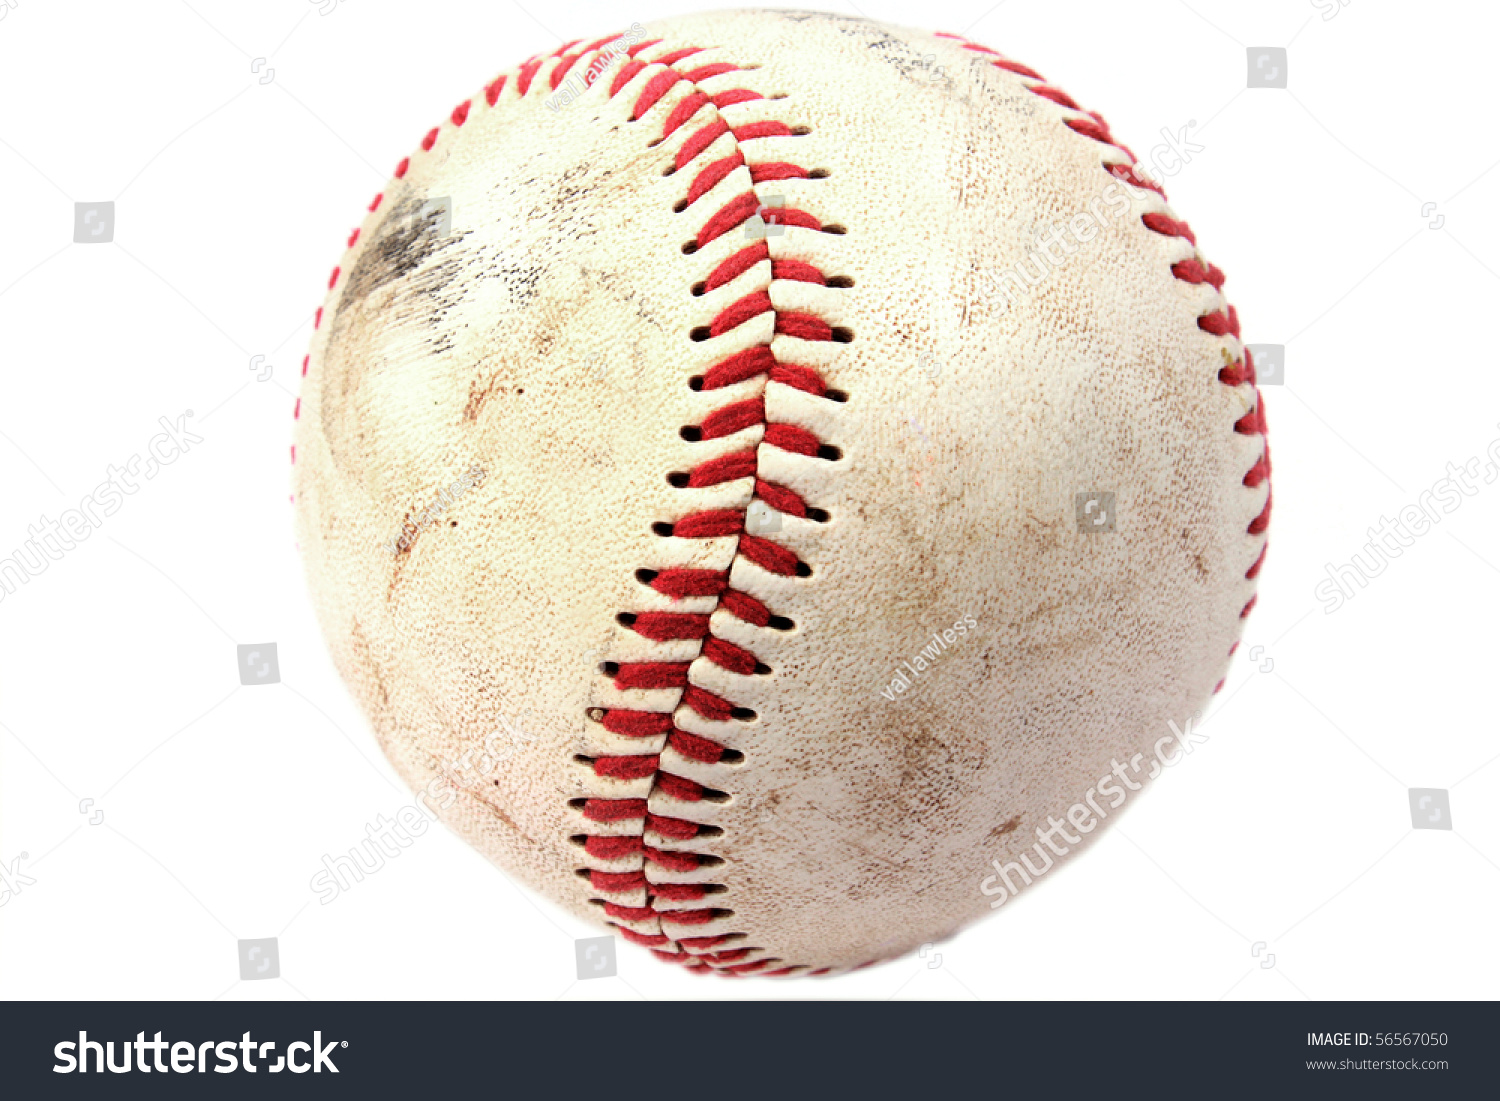 Closeup of dirty baseball #56567050